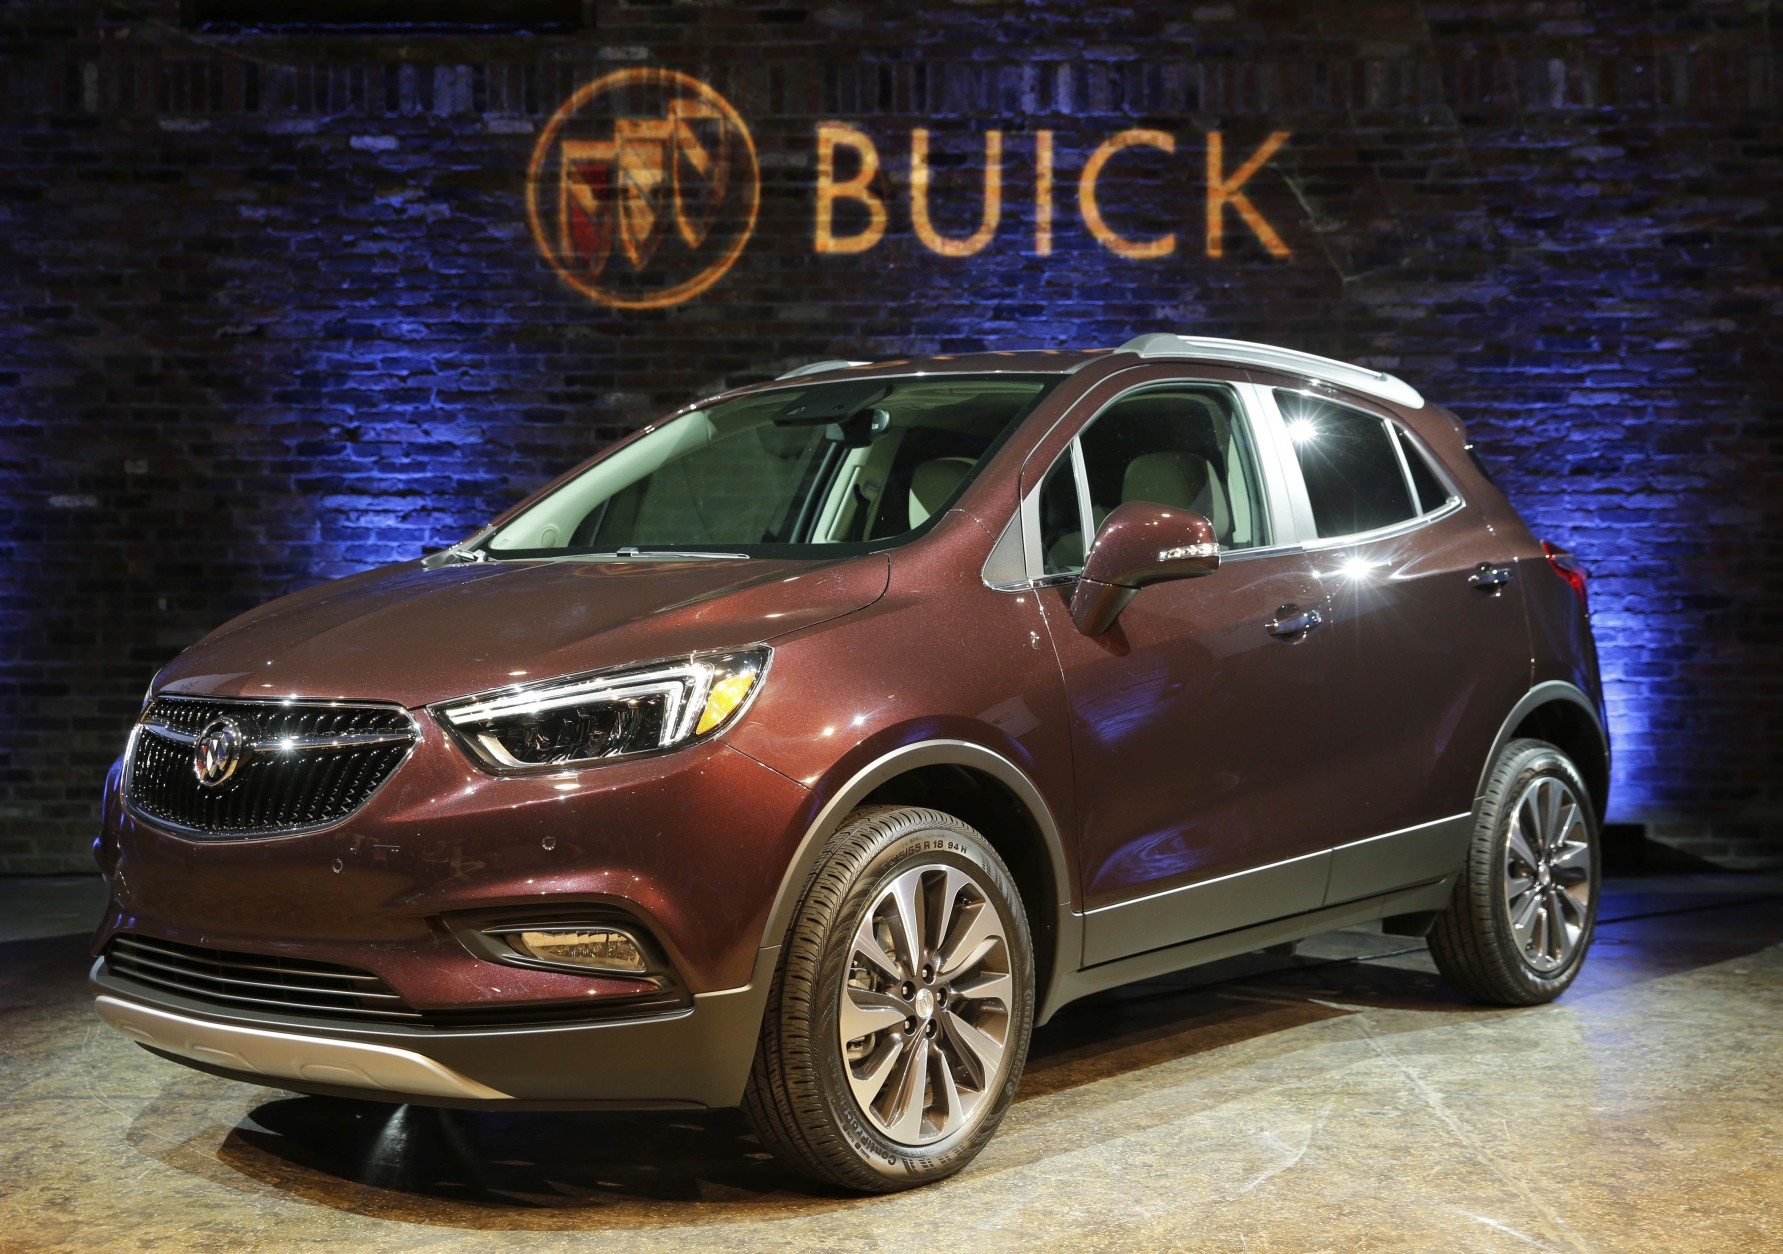 <h3>Buick Encore 4WD</h3> <p>Apparently the trick to not having your car stolen is to buy a family-friendly, sensible SUV. The fifth least stolen car on HLDI&#8217;s list is the Buick Encore 4WD.</p>